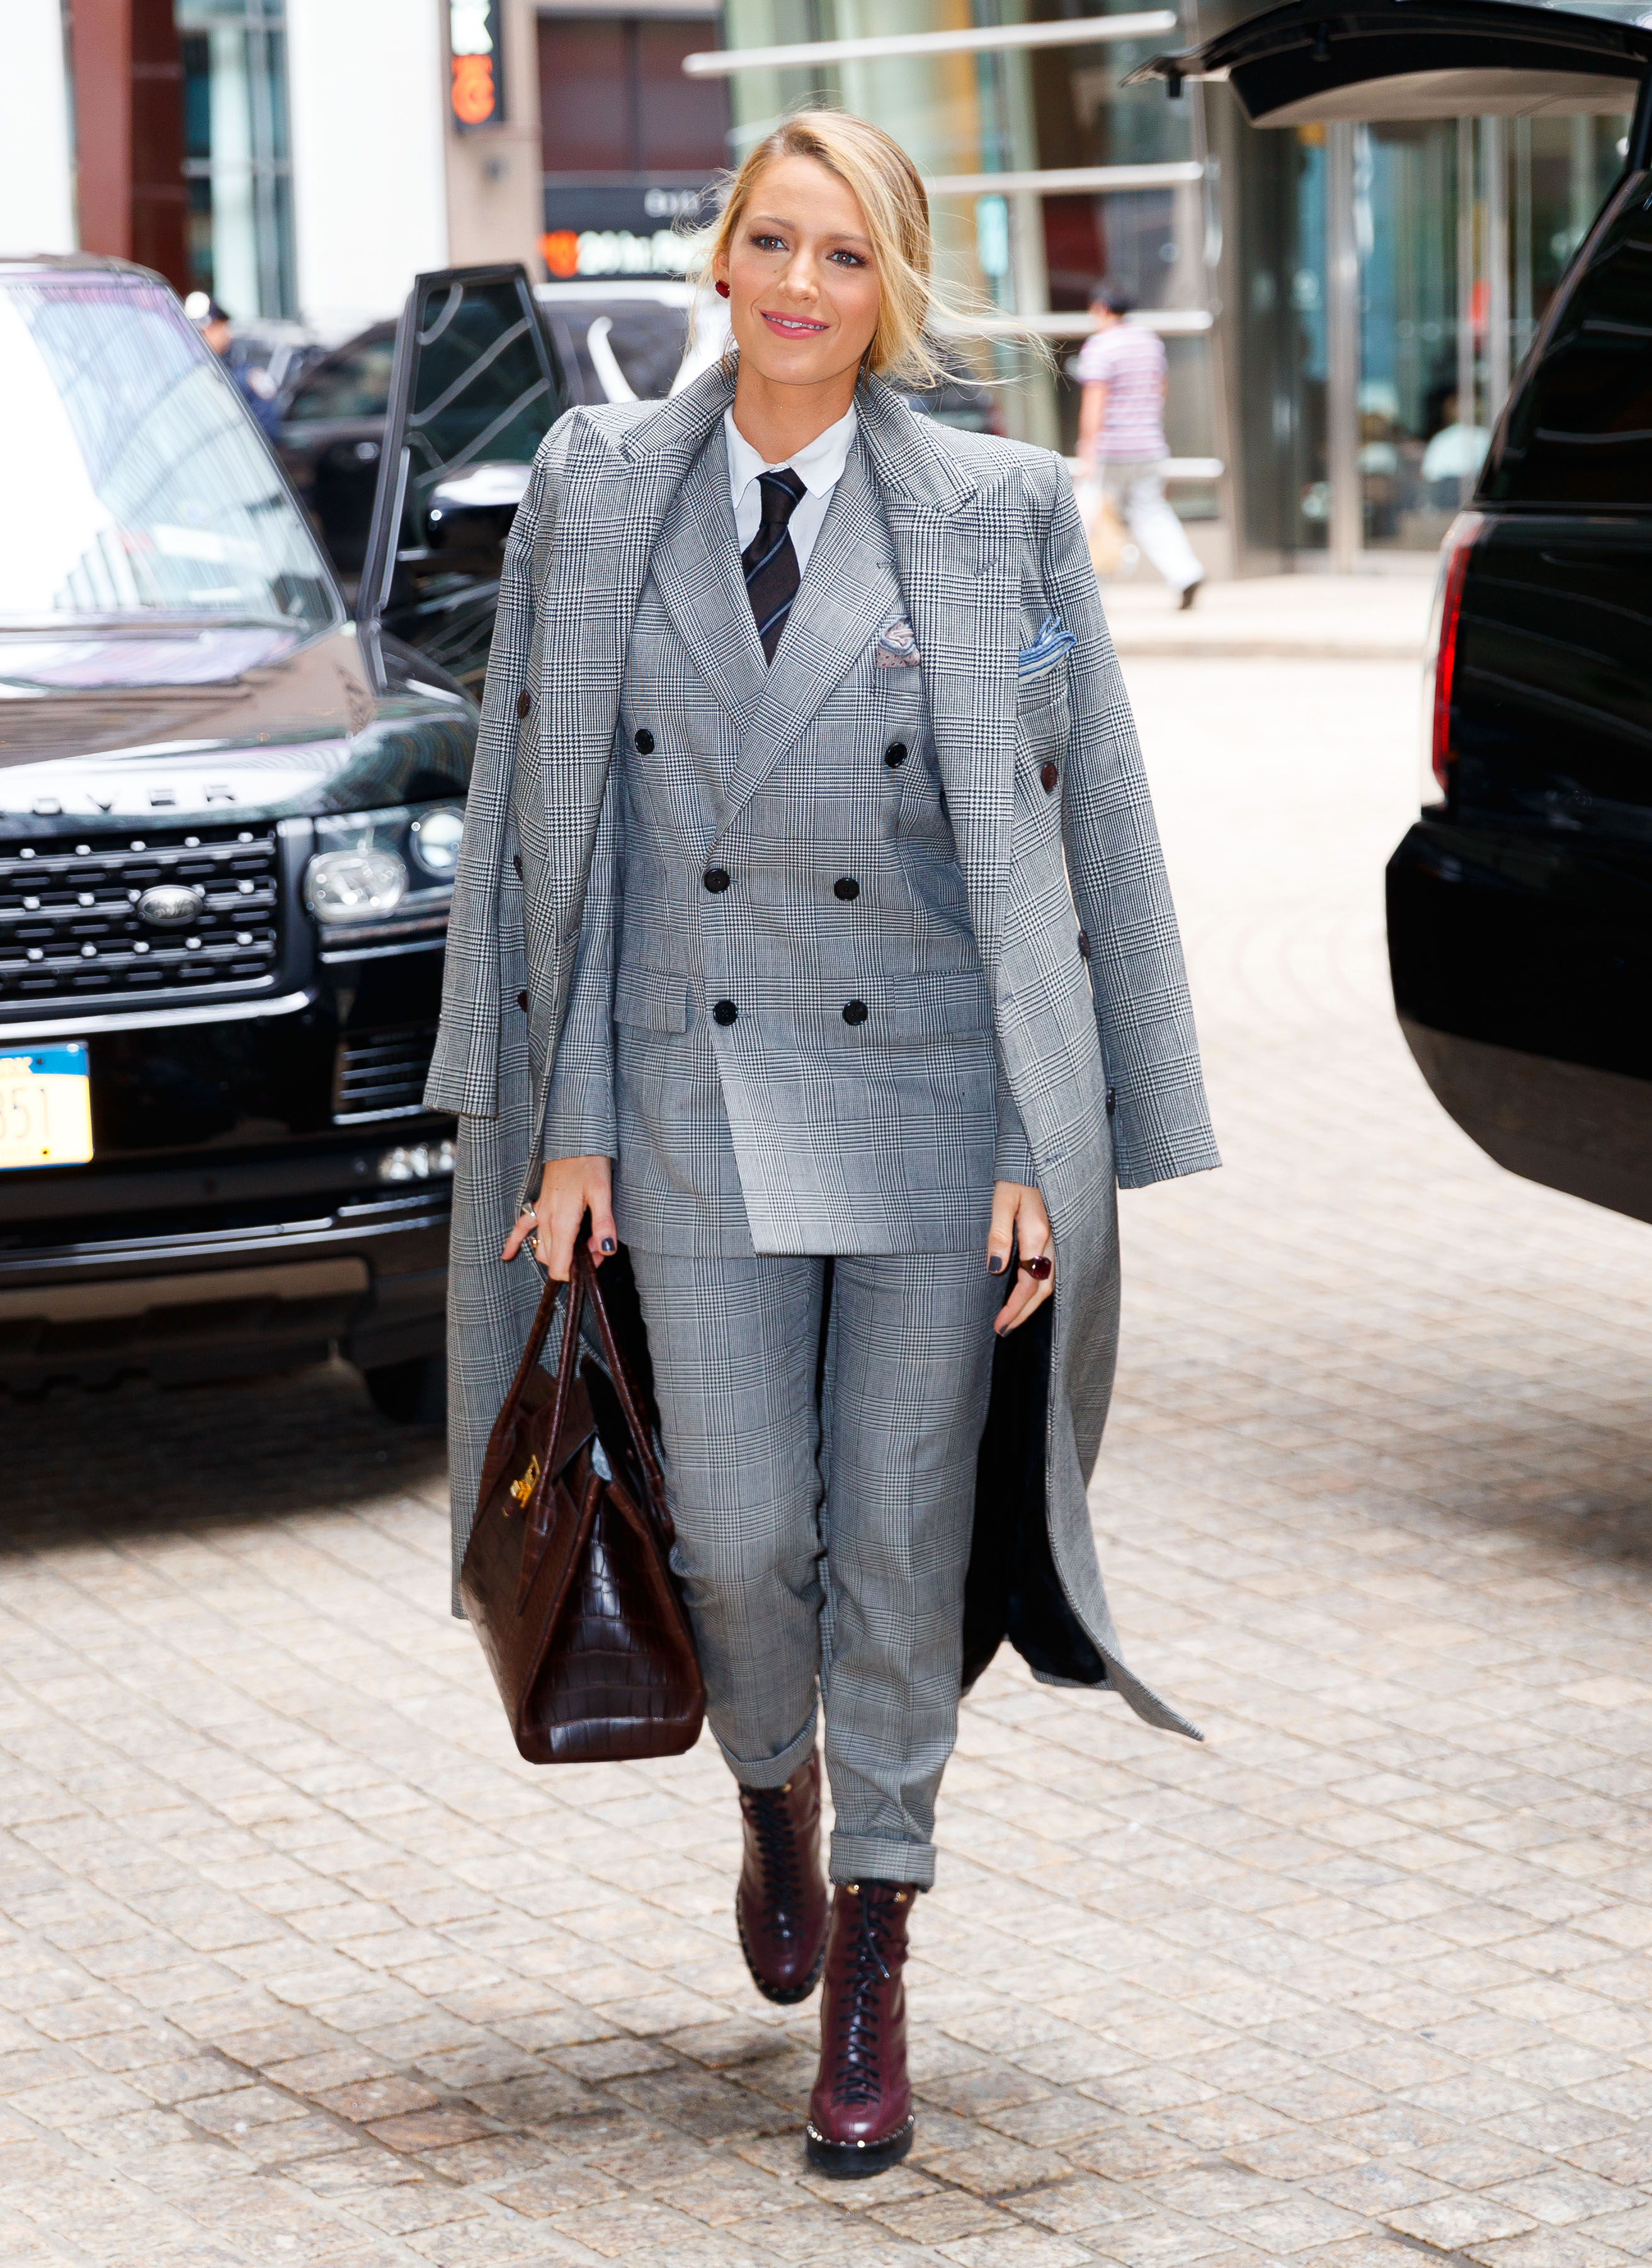 Blake Lively is all smiles in a double-breasted suit when coming out of her hotel in New York. <P> Pictured: Blake Lively <B>Ref: SPL1603268  161017  </B><BR/> Picture by: Jackson Lee / Splash News<BR/> </P><P> <B>Splash News and Pictures</B><BR/> Los Angeles:	310-821-2666<BR/> New York:	212-619-2666<BR/> London:	870-934-2666<BR/> <span id=